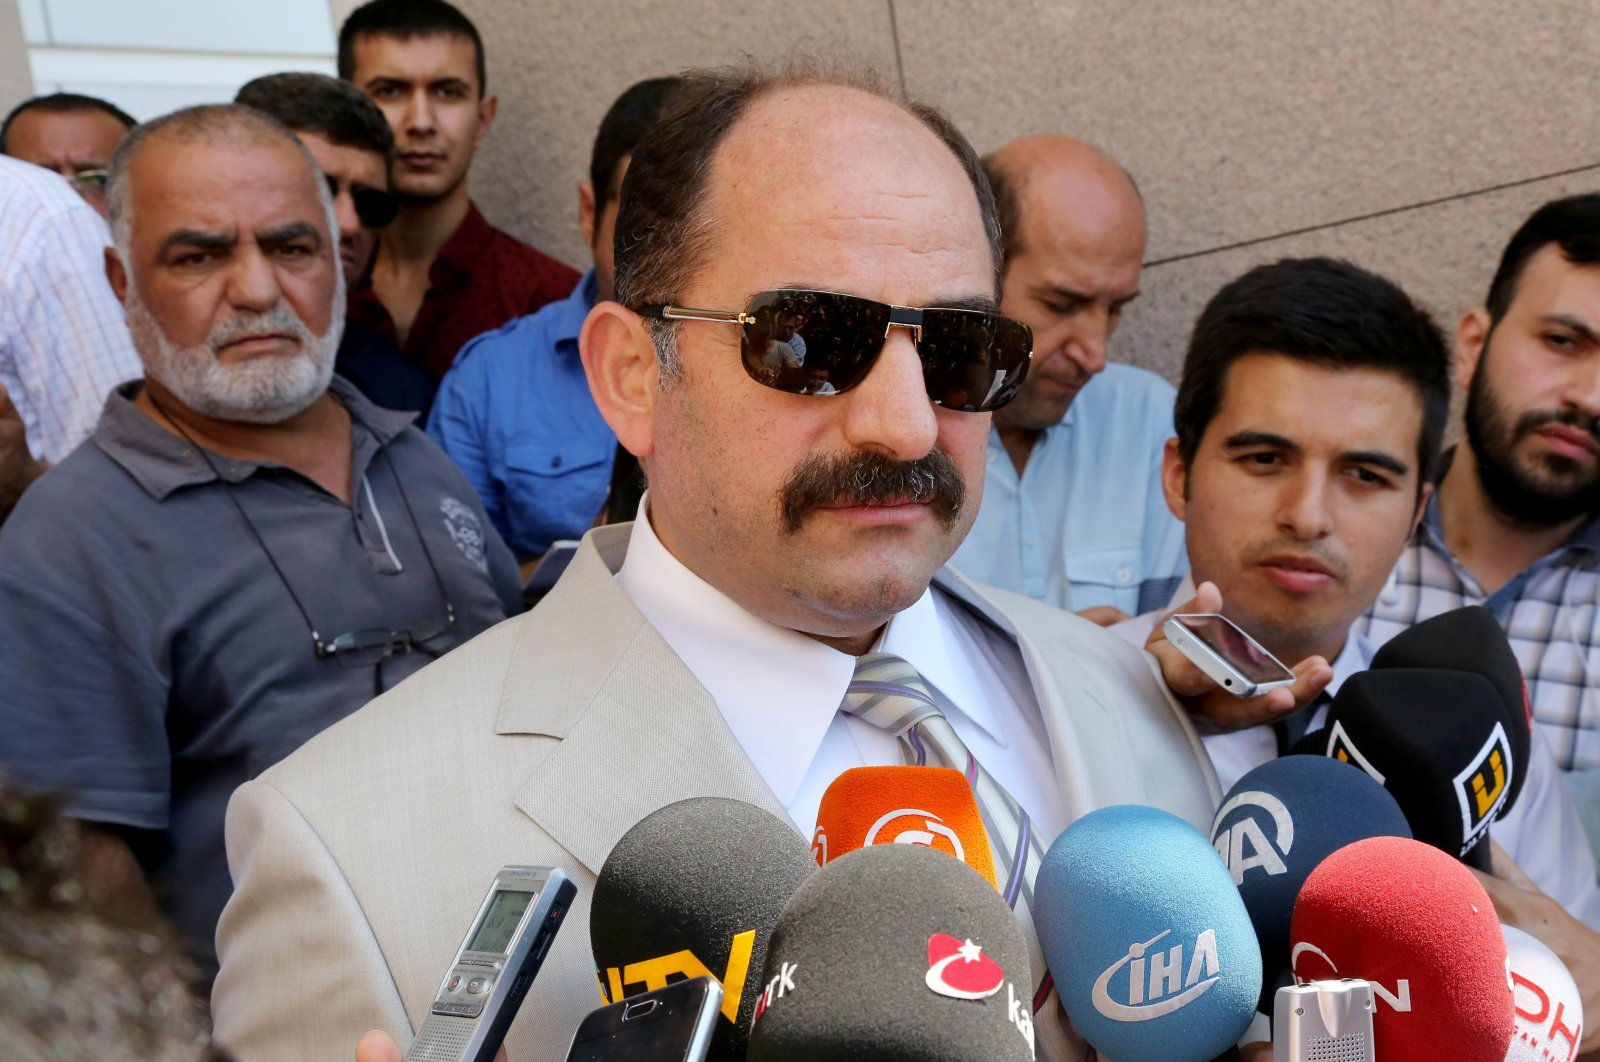 Zekeriya Öz, a former prosecutor wanted for his links to the Gülenist Terror Group (FETÖ), speaks to reporters outside a courthouse in Istanbul, Turkey, Aug. 6, 2014. (AA Photo)